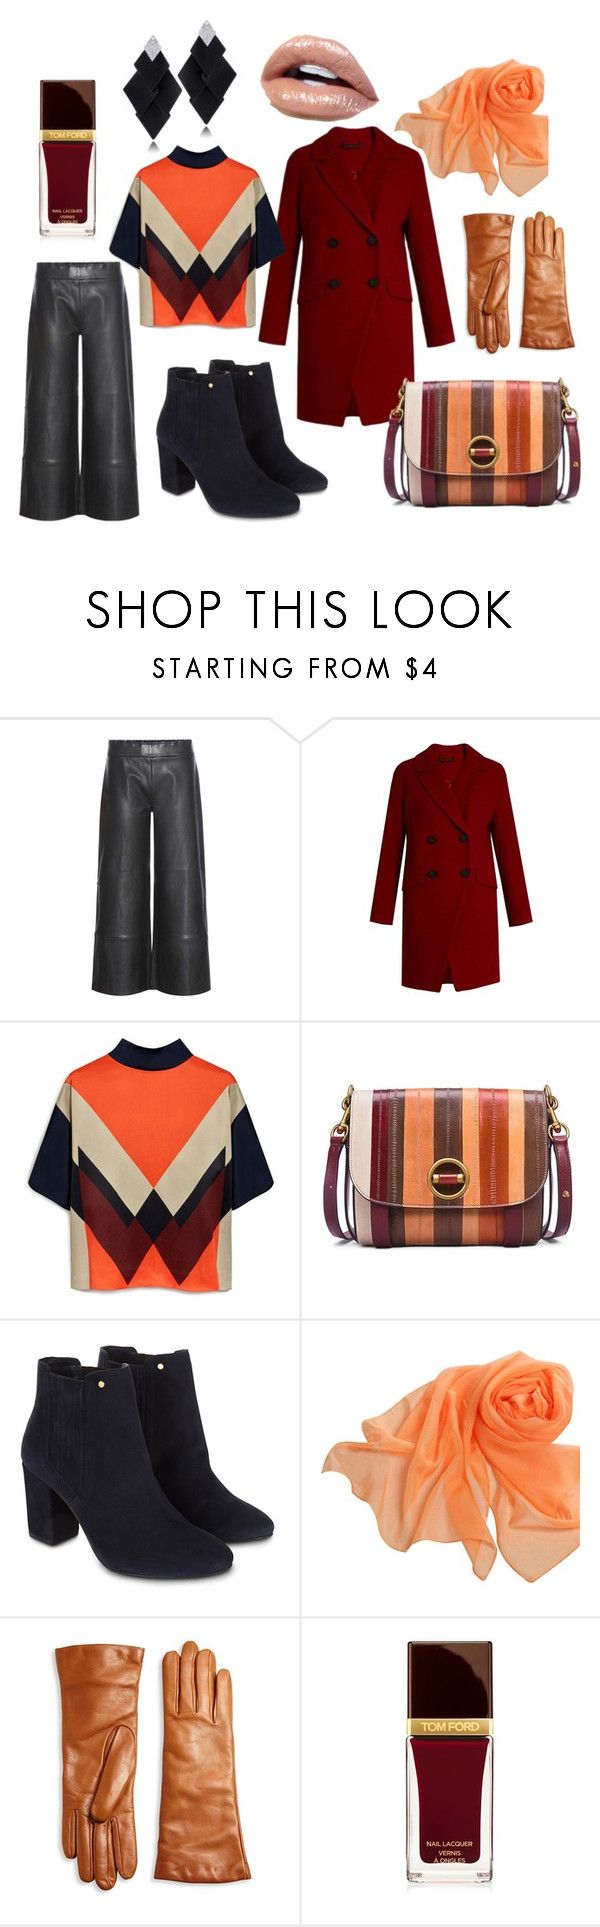 """Осенний шик"" by evavendoc on Polyvore featuring мода, STOULS, Diane Von Furstenberg, Mulberry, Tory Burch, Monsoon, Saks Fifth Avenue Collection, Tom Ford и Roberto Demeglio"